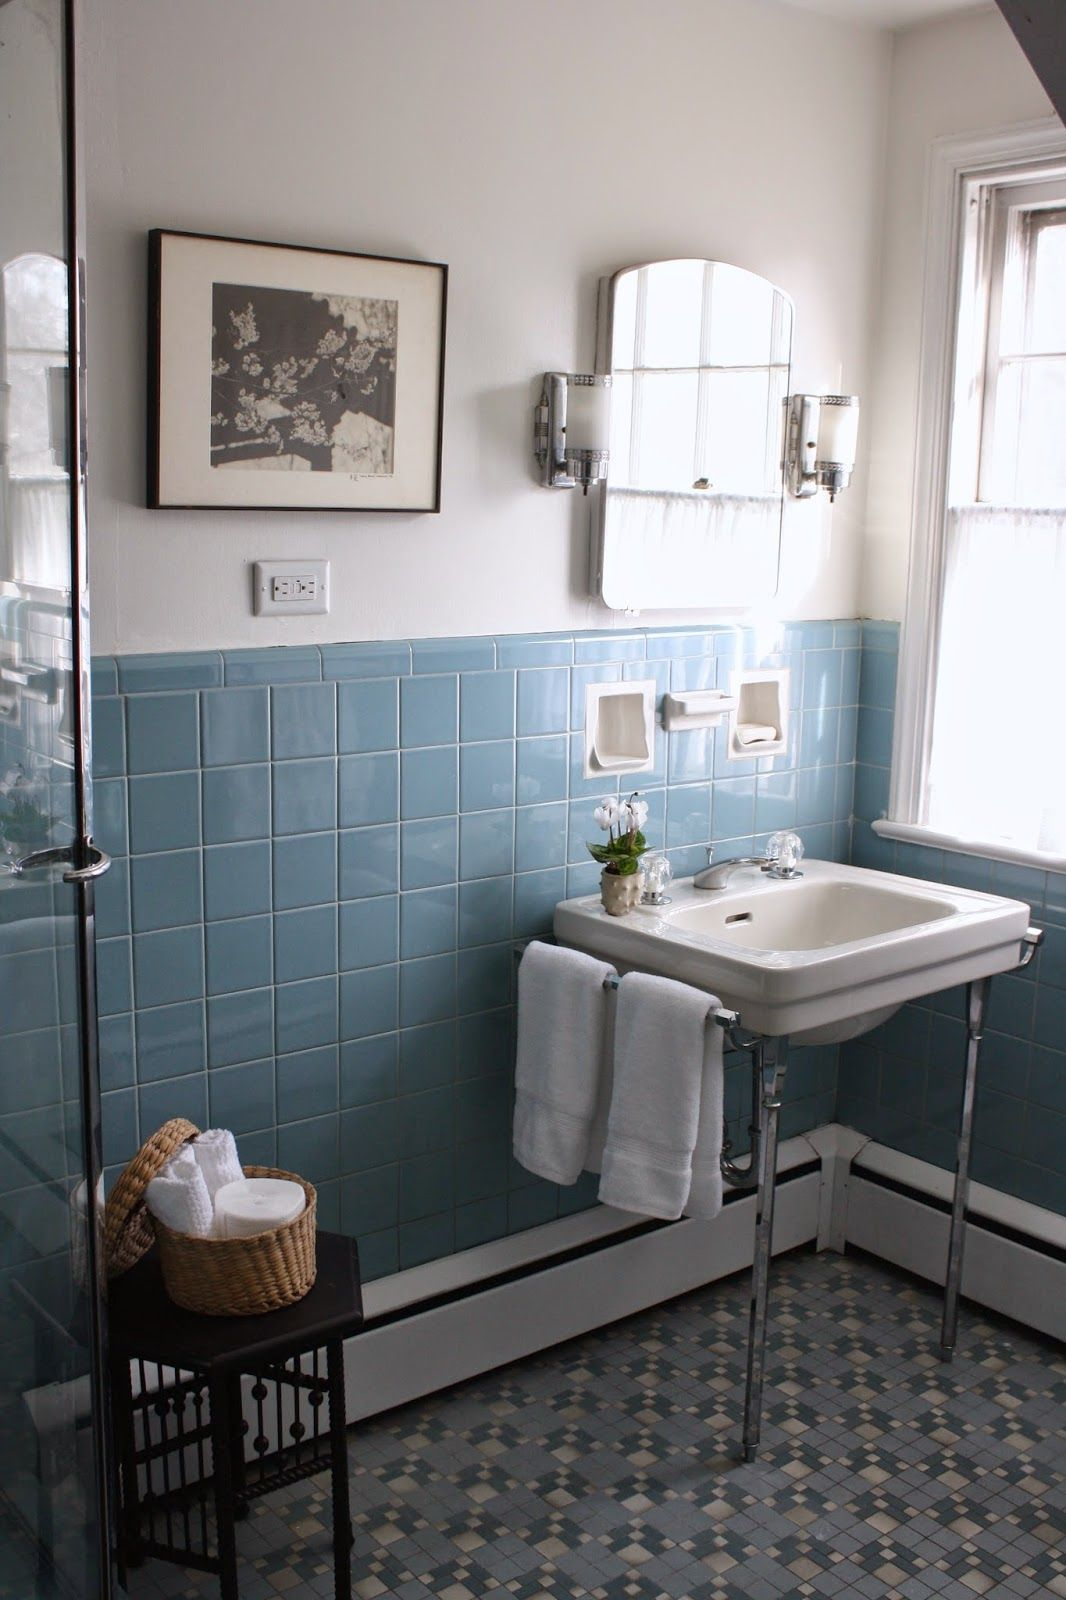 Vintage colored tile bath with field tile in muted blue